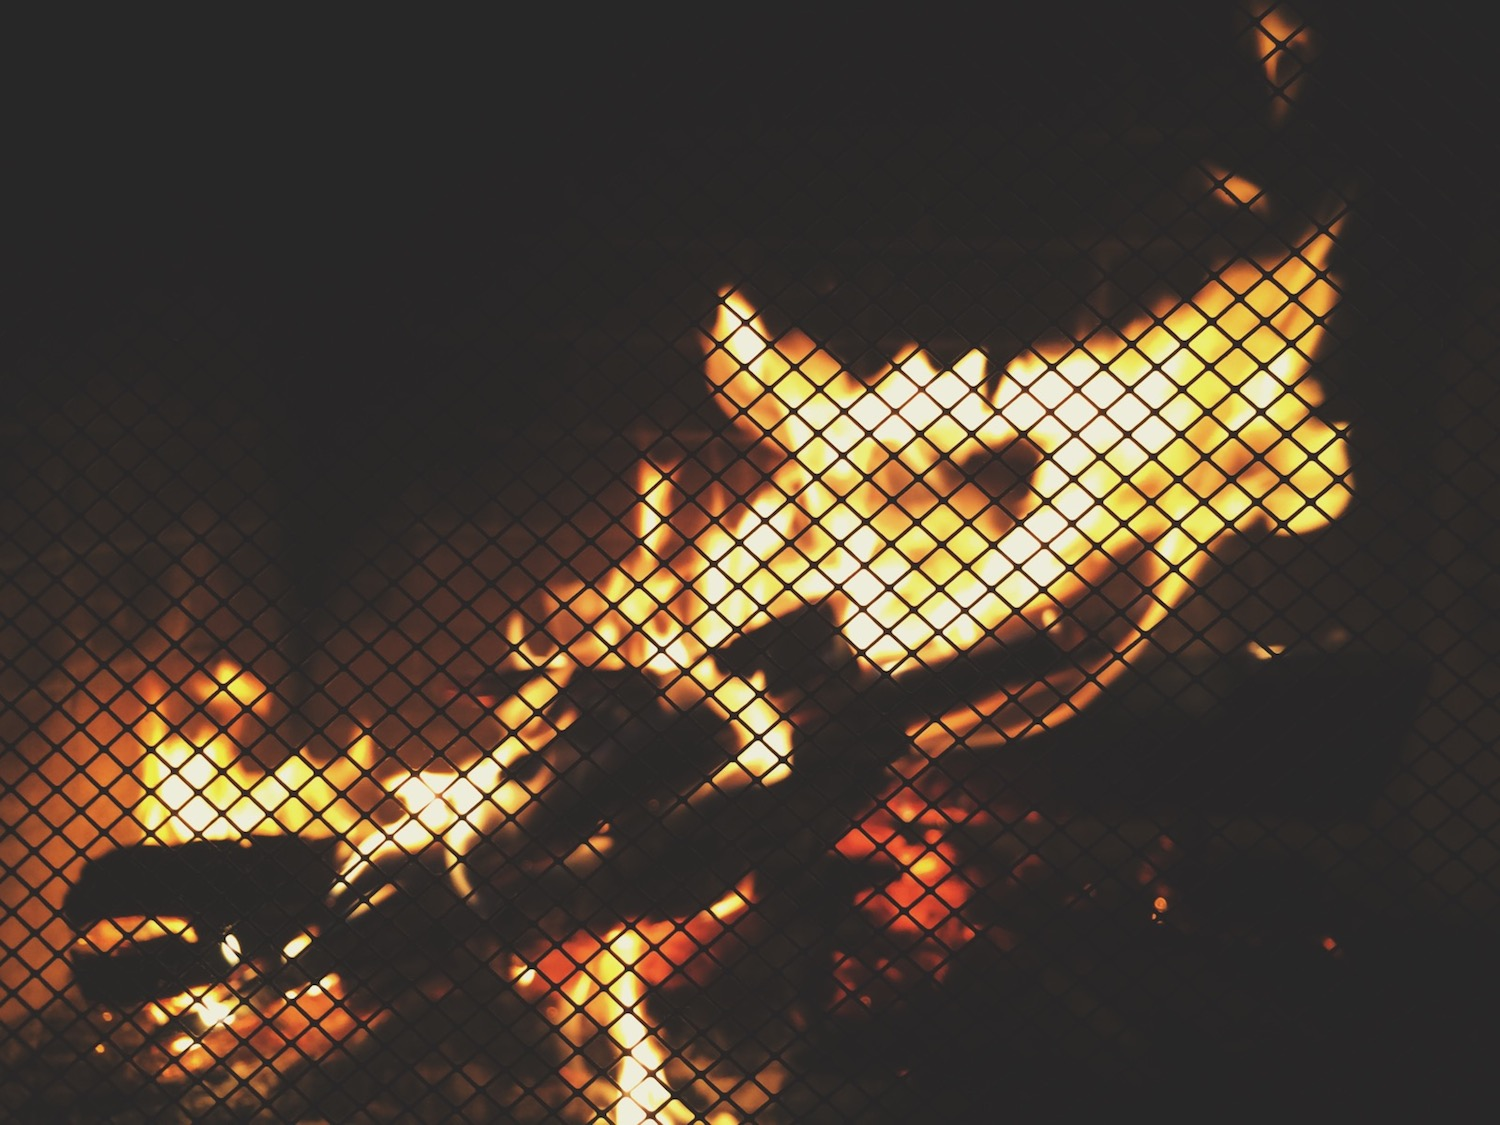 Warm nights by the fireplace at the boys' house ♥